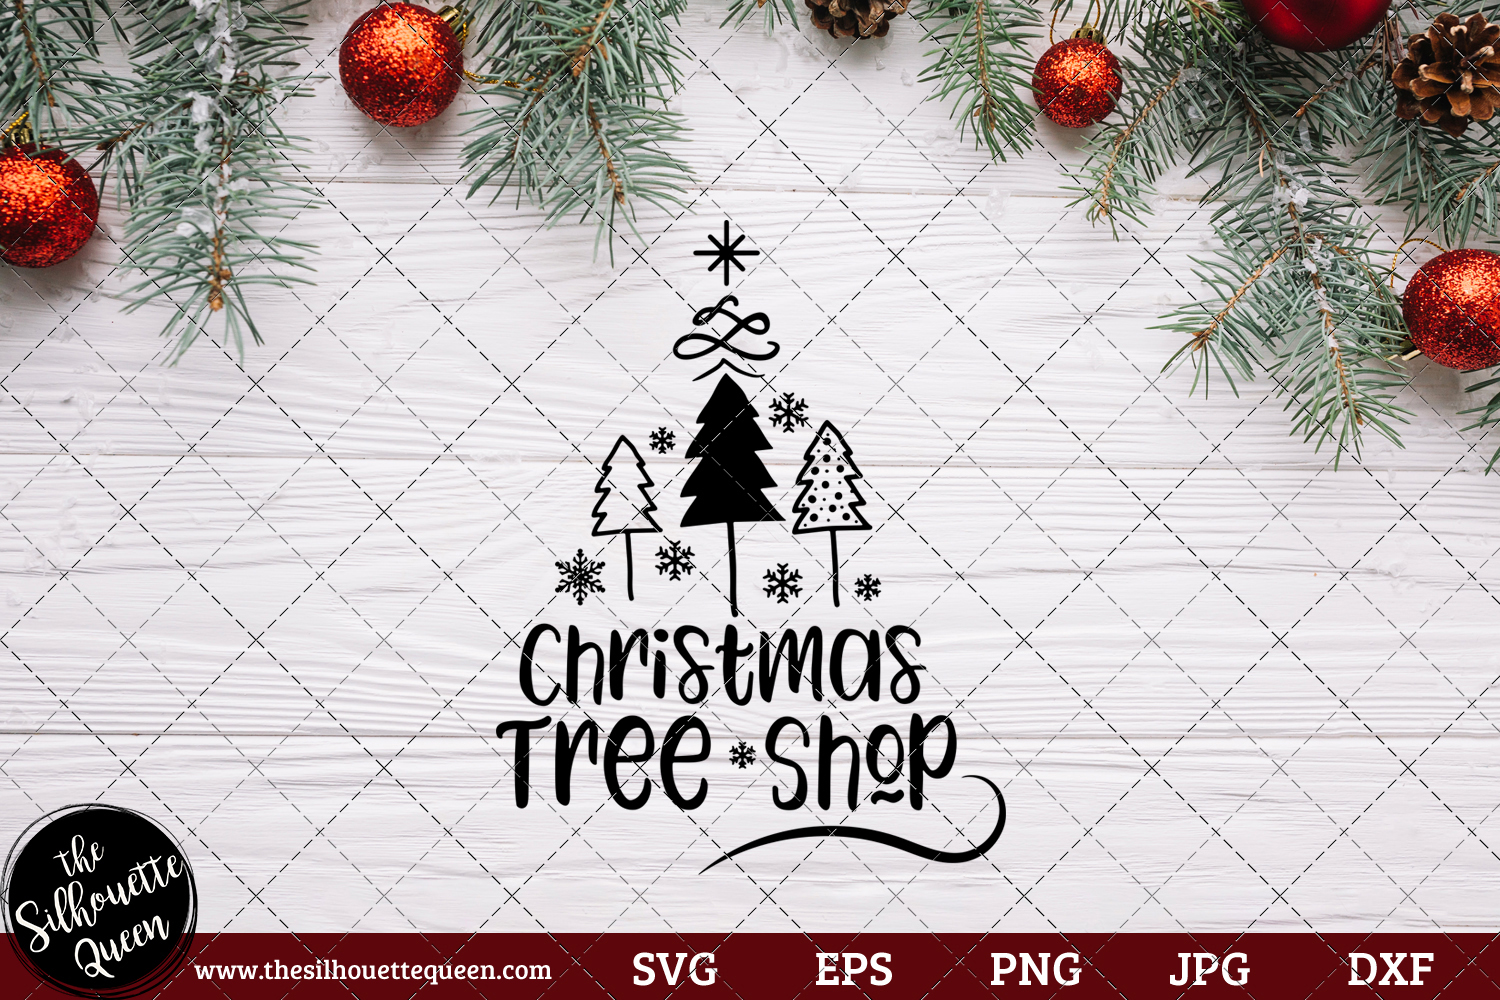 Download Free Christmas Tree Shop Saying Graphic By Thesilhouettequeenshop Creative Fabrica for Cricut Explore, Silhouette and other cutting machines.